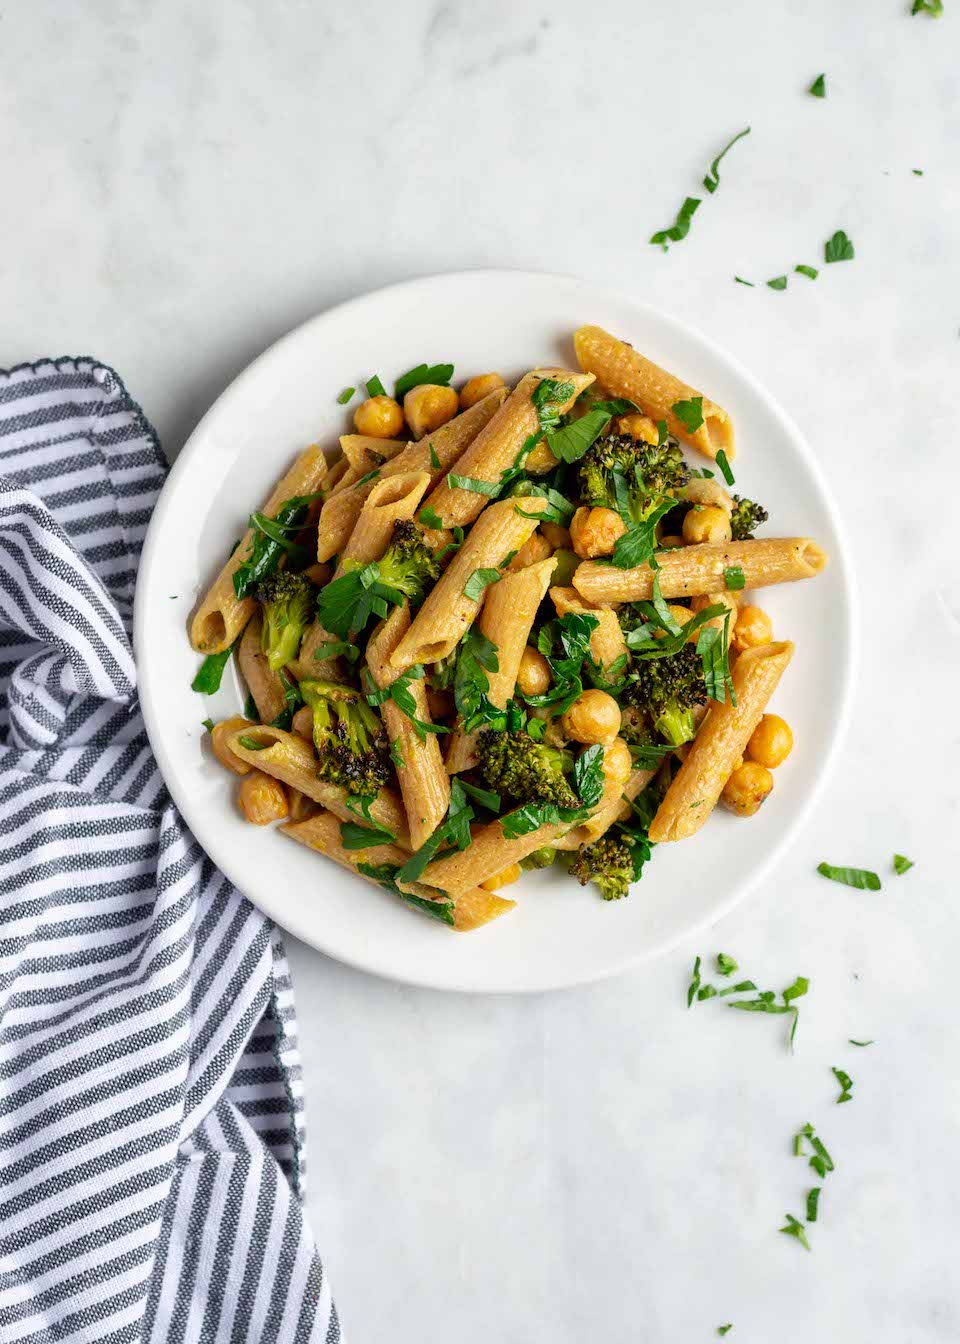 Pasta with Chickpeas and Broccoli